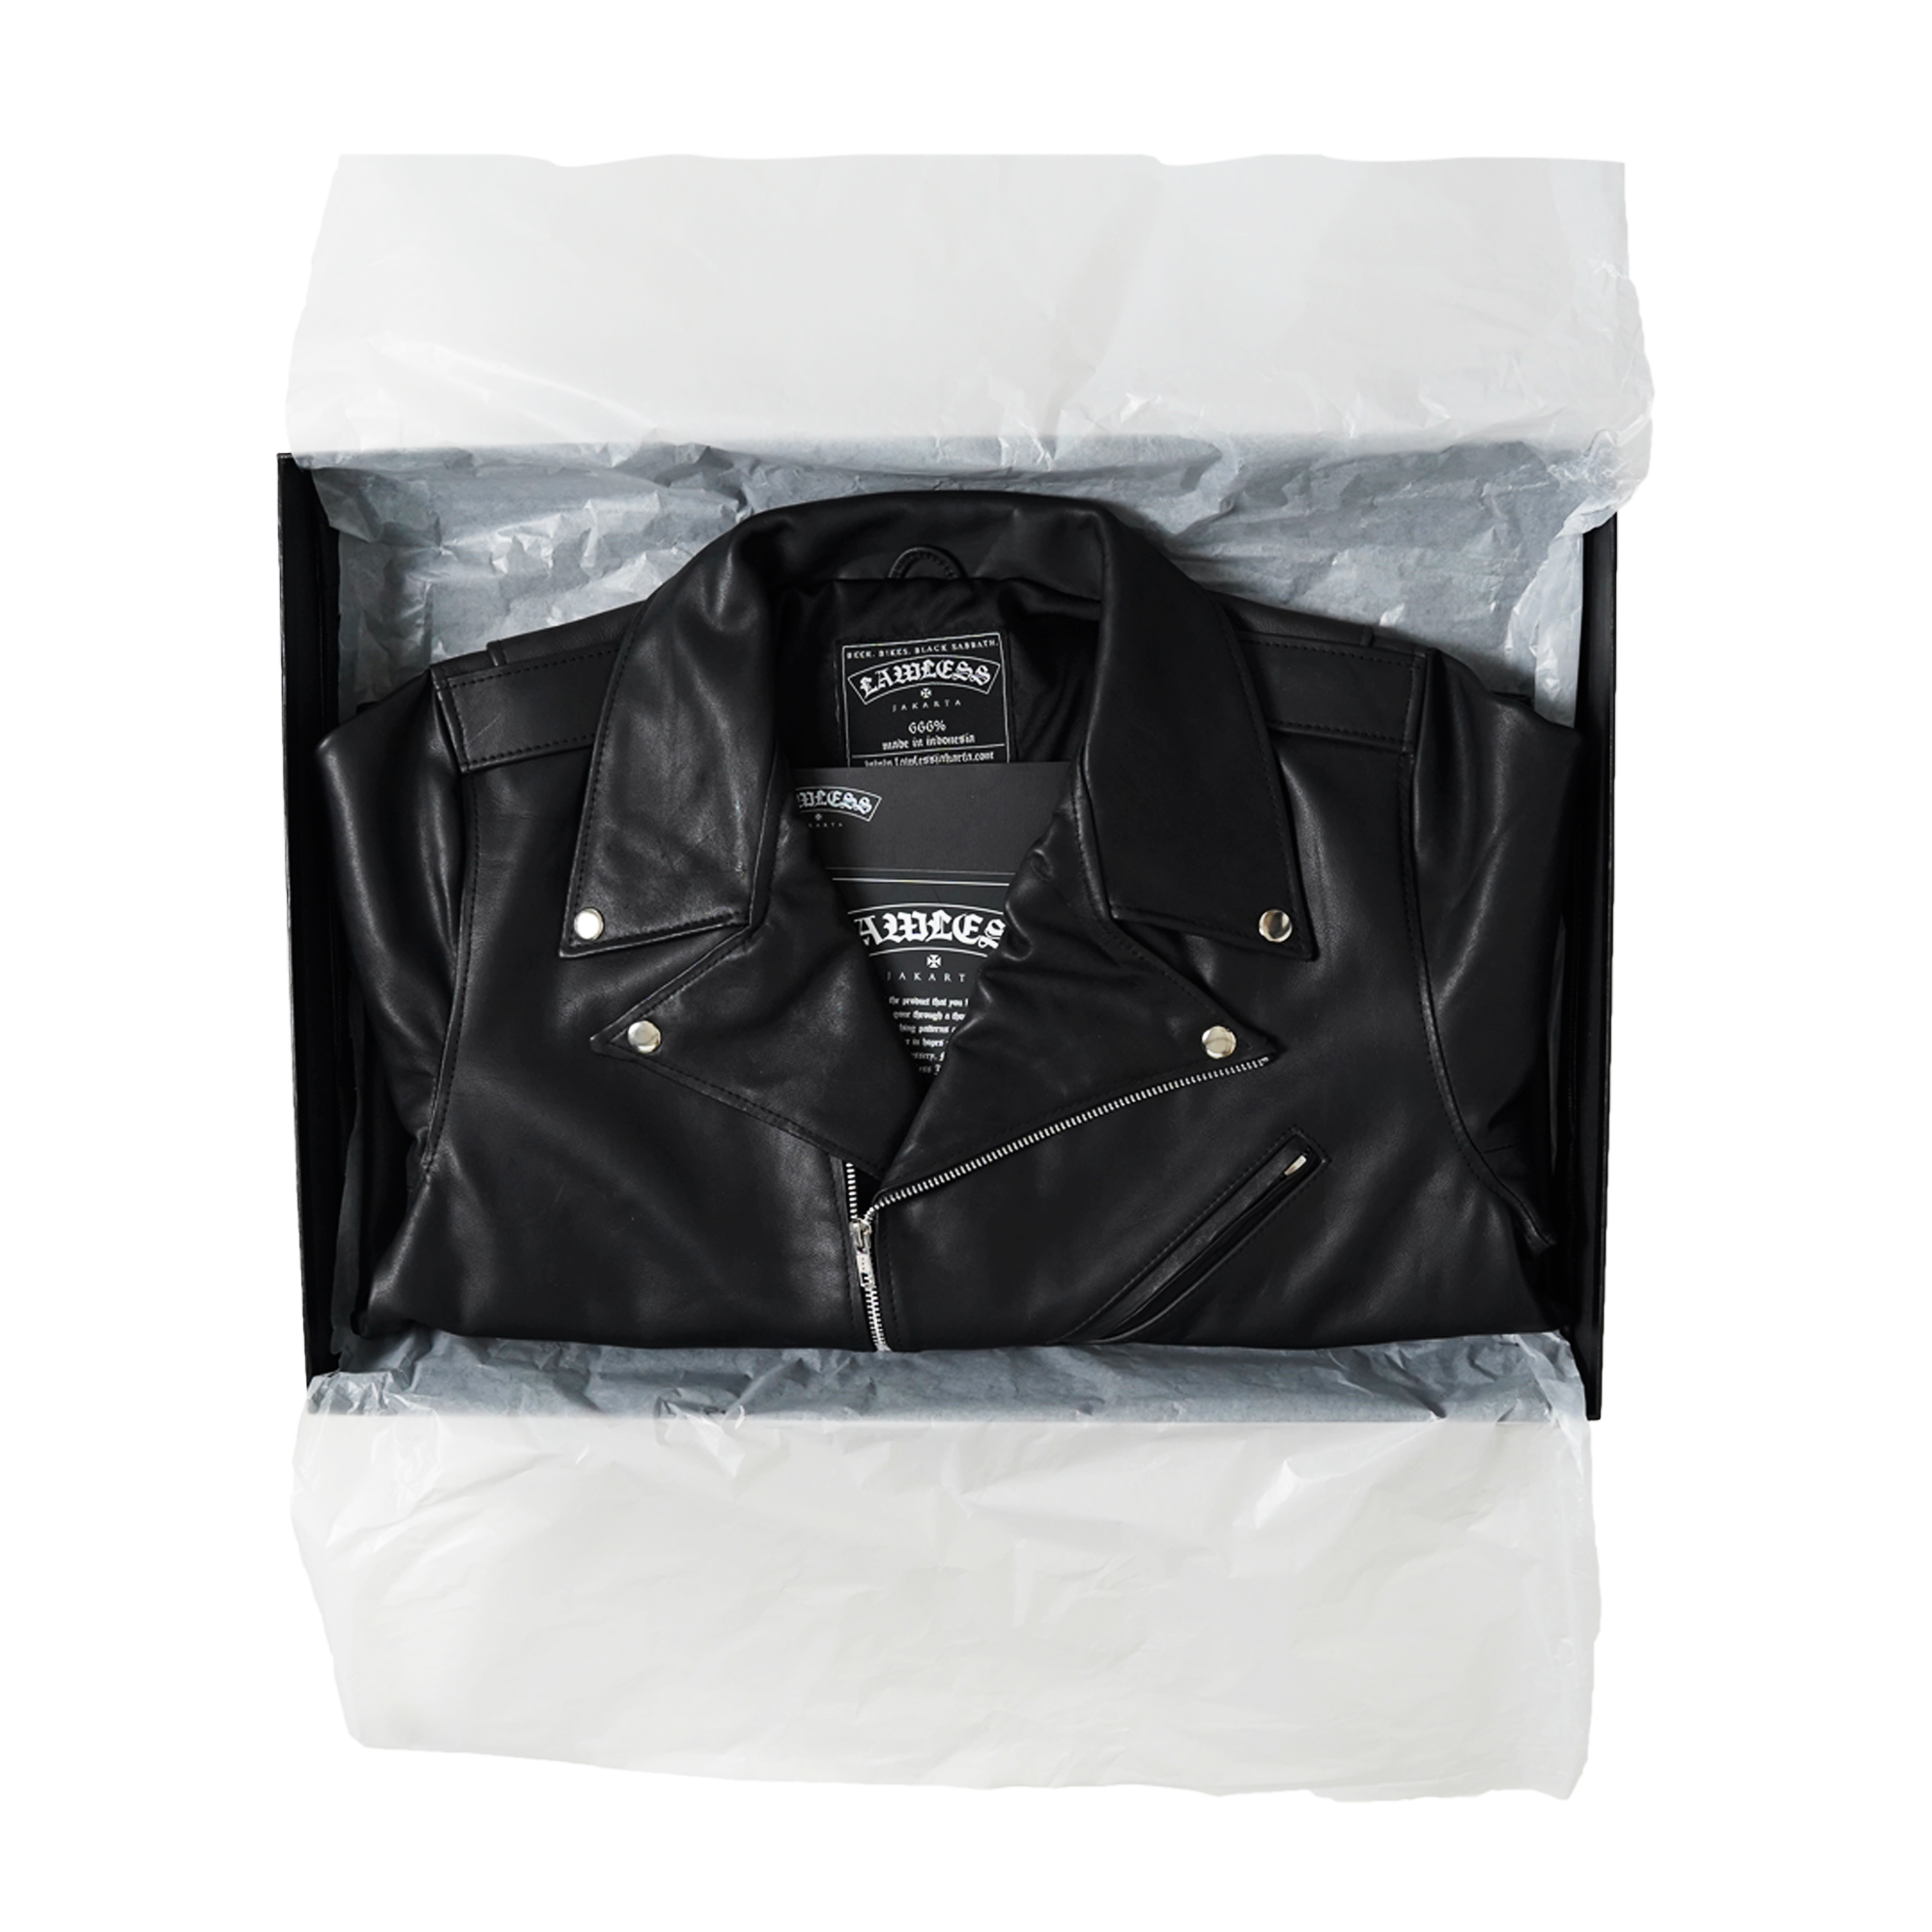 lawless_leather_jacket_packaging_3